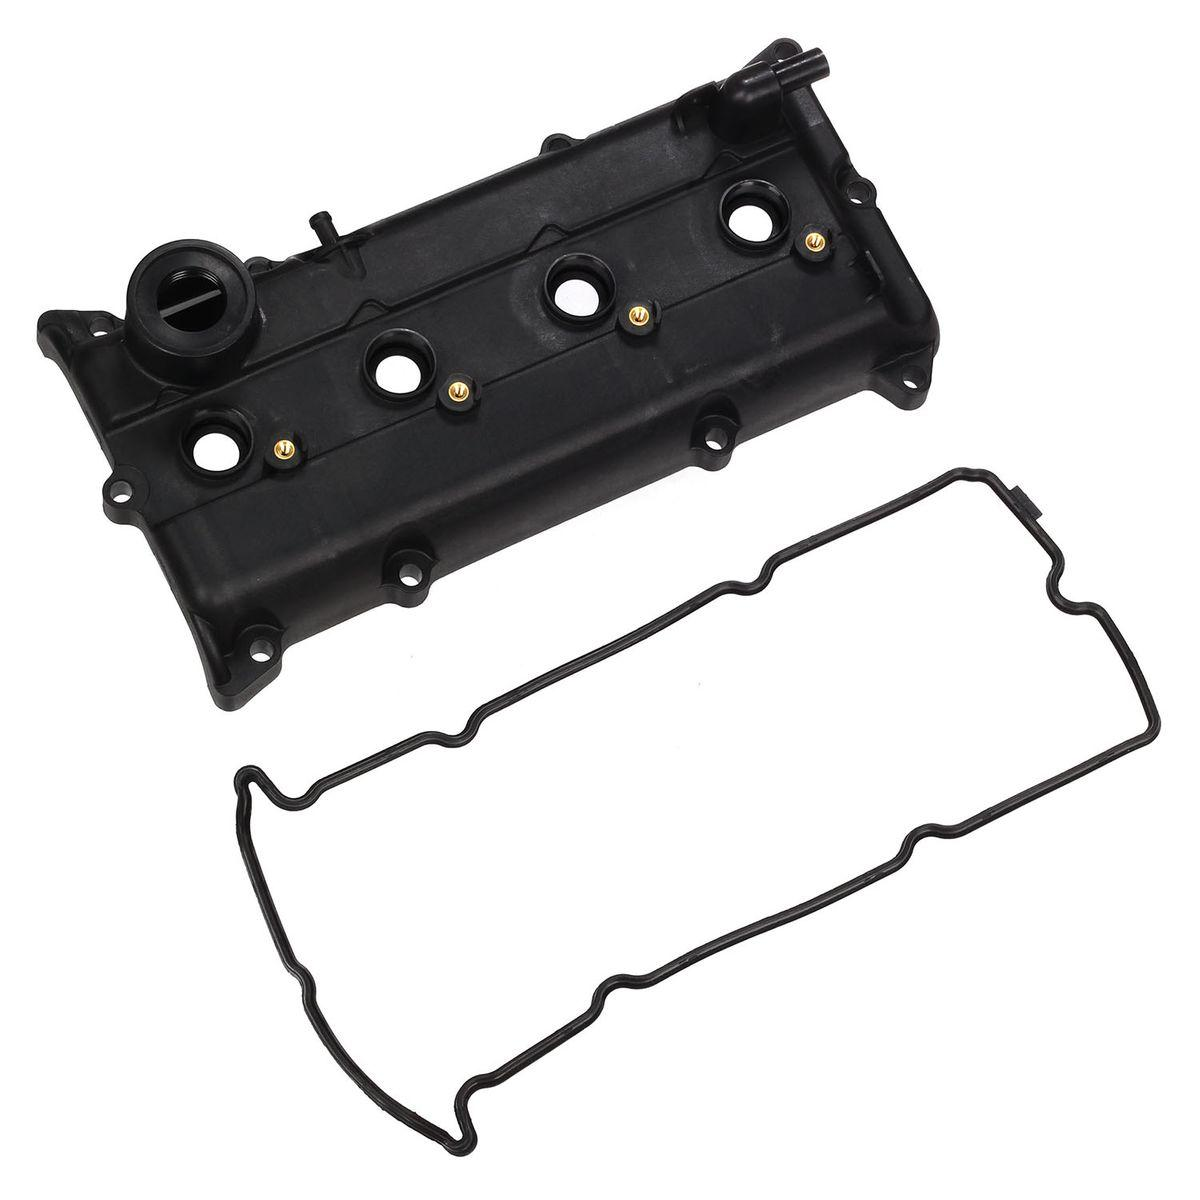 Valve Cover & Head Gasket Fits 02-2006 Nissan Altima